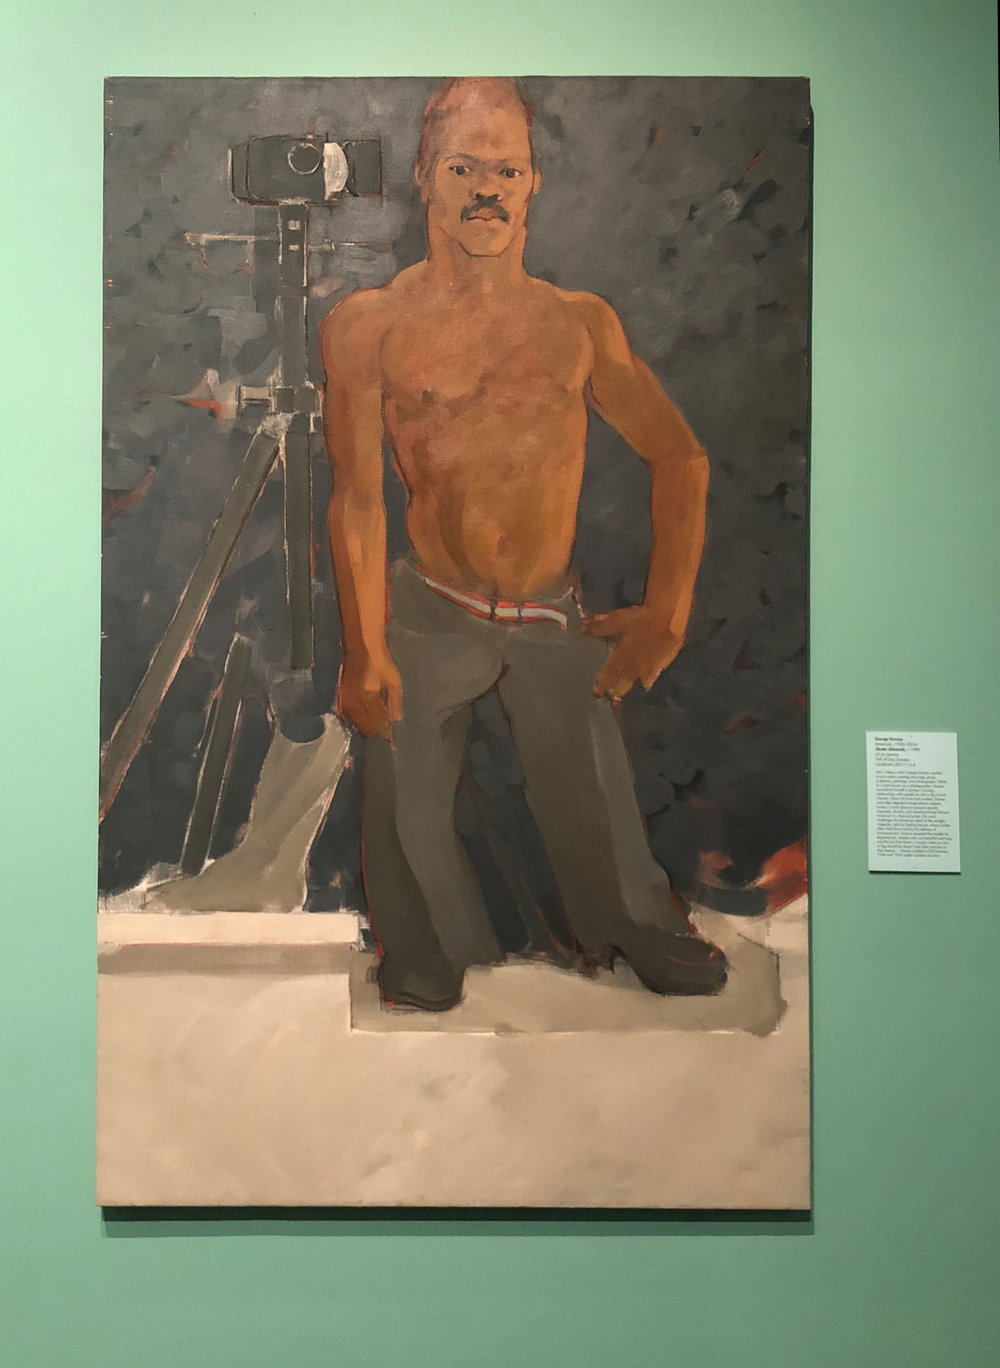 George Dureau (American, 1930–2014),  Dexter Edwards,  c. 1989, oil on canvas, Gift of Don Dureau, LSUMOA L2017.15.4